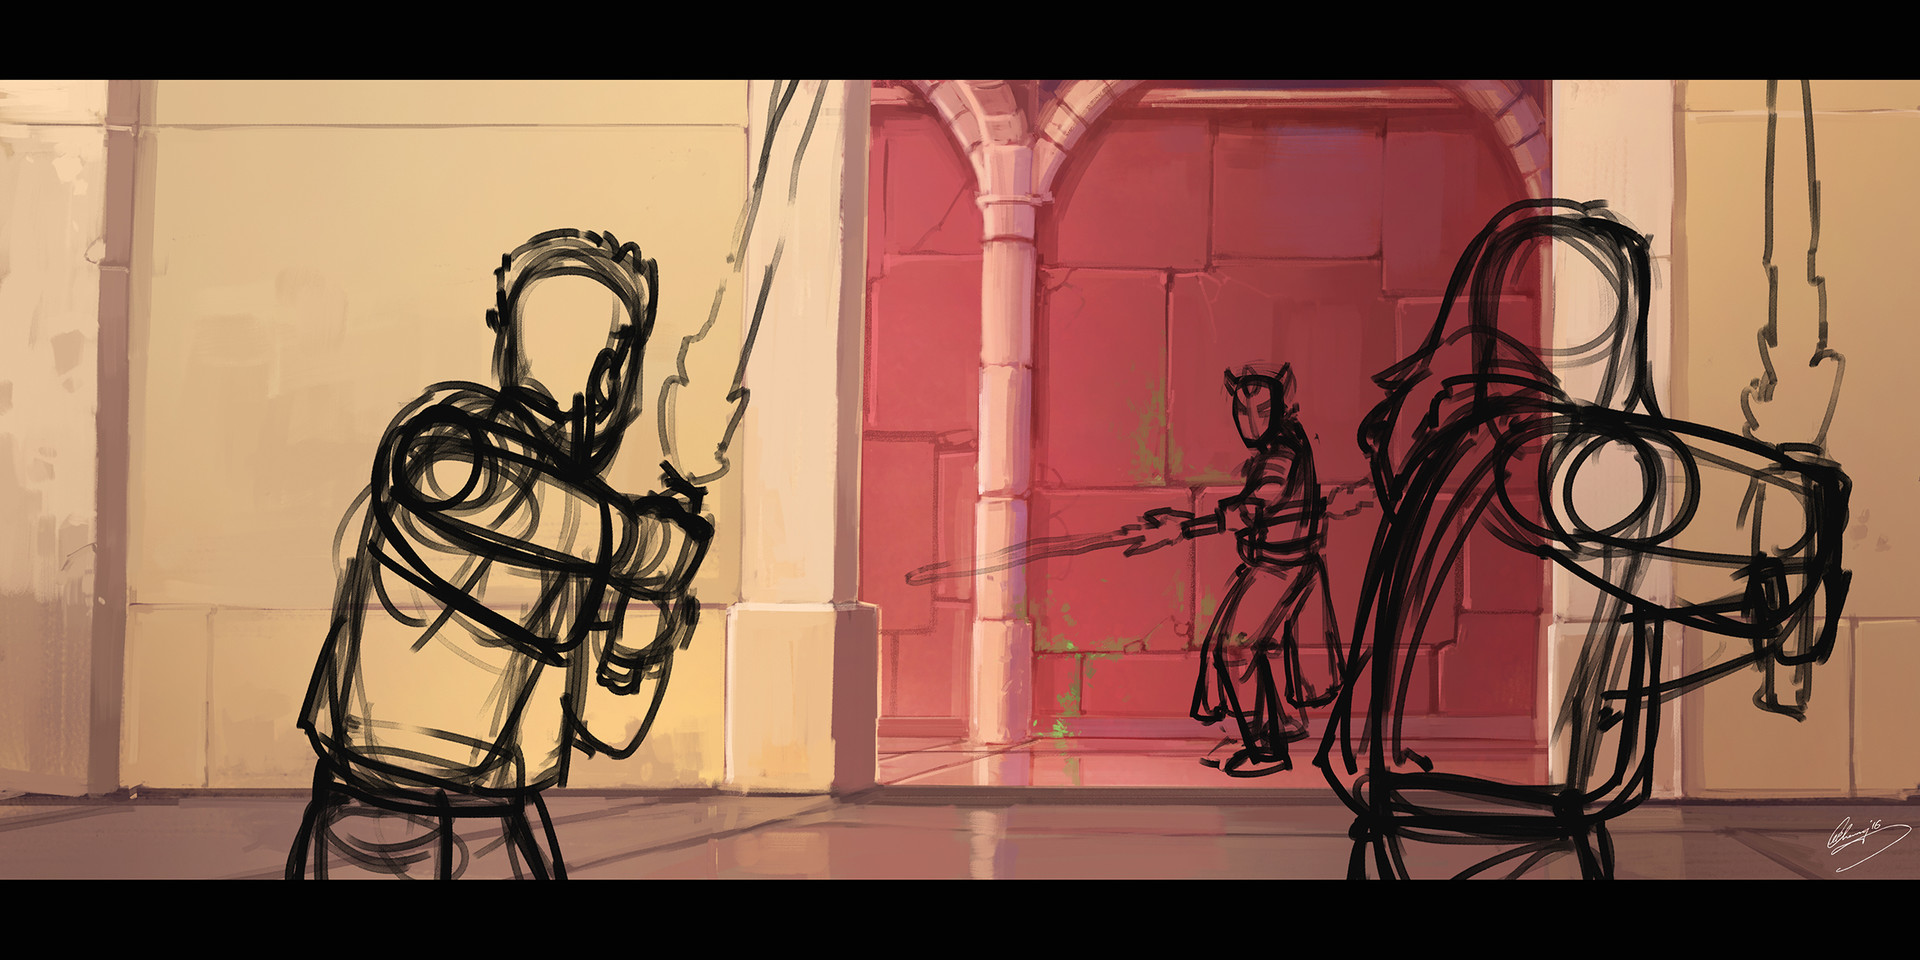 lap-pun-cheung-duel-of-the-fates-wip002-online.jpg